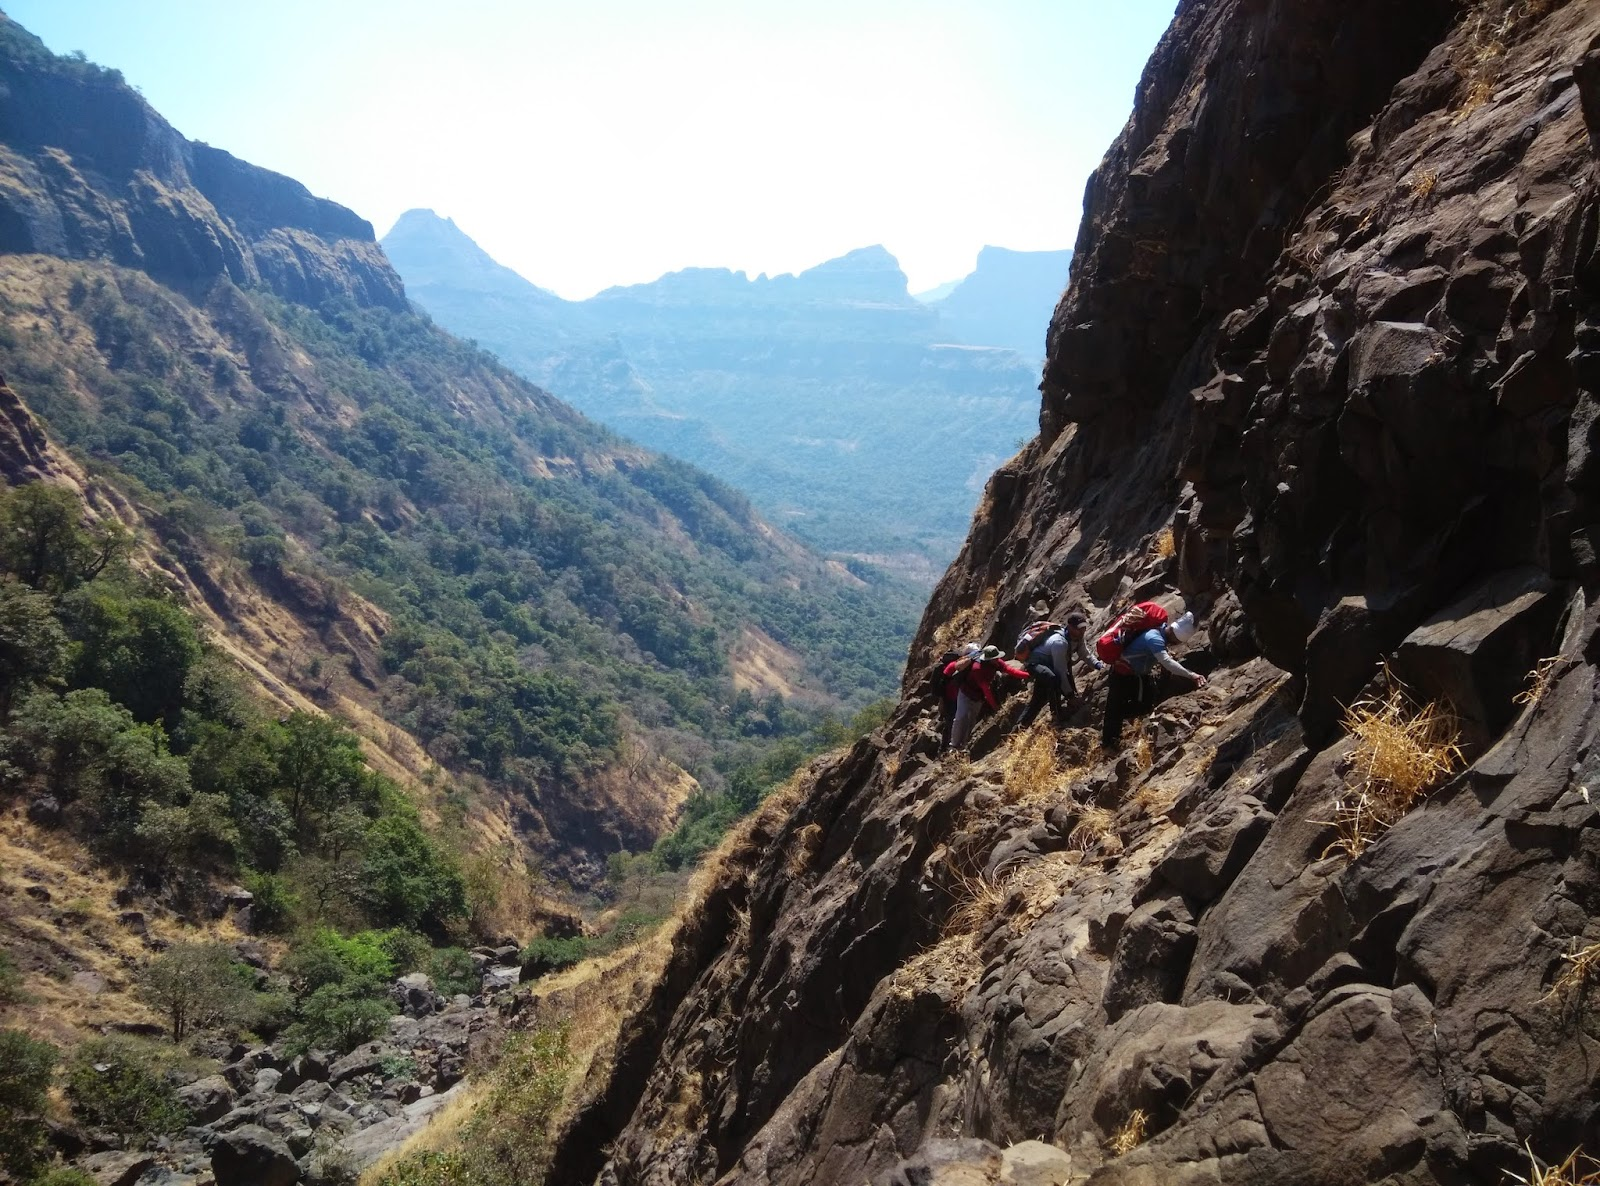 harishchandra Gad via new route Taramati ghal